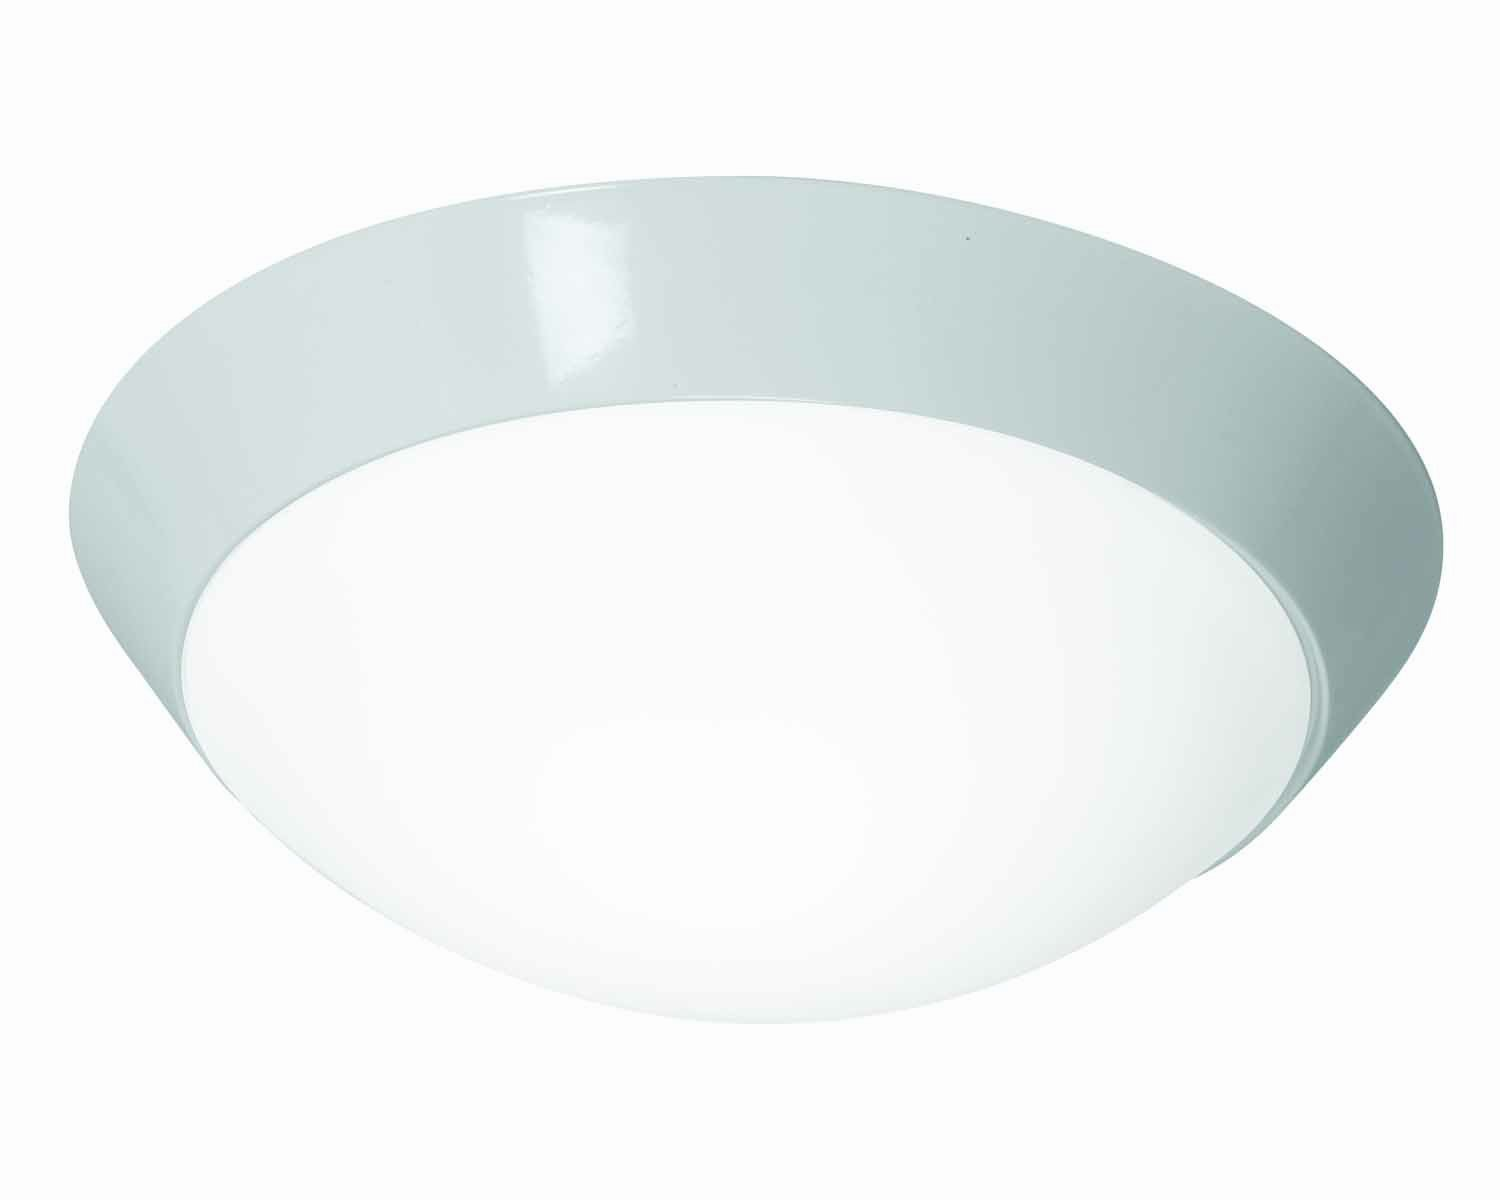 Wac lighting hr hl 4 low voltage new construction housing recessed can light - Amazon Com Access Lighting 20624 Bs Opl Cobalt 1 Light Flush Mount Brushed Steel With Opal Glass Home Improvement